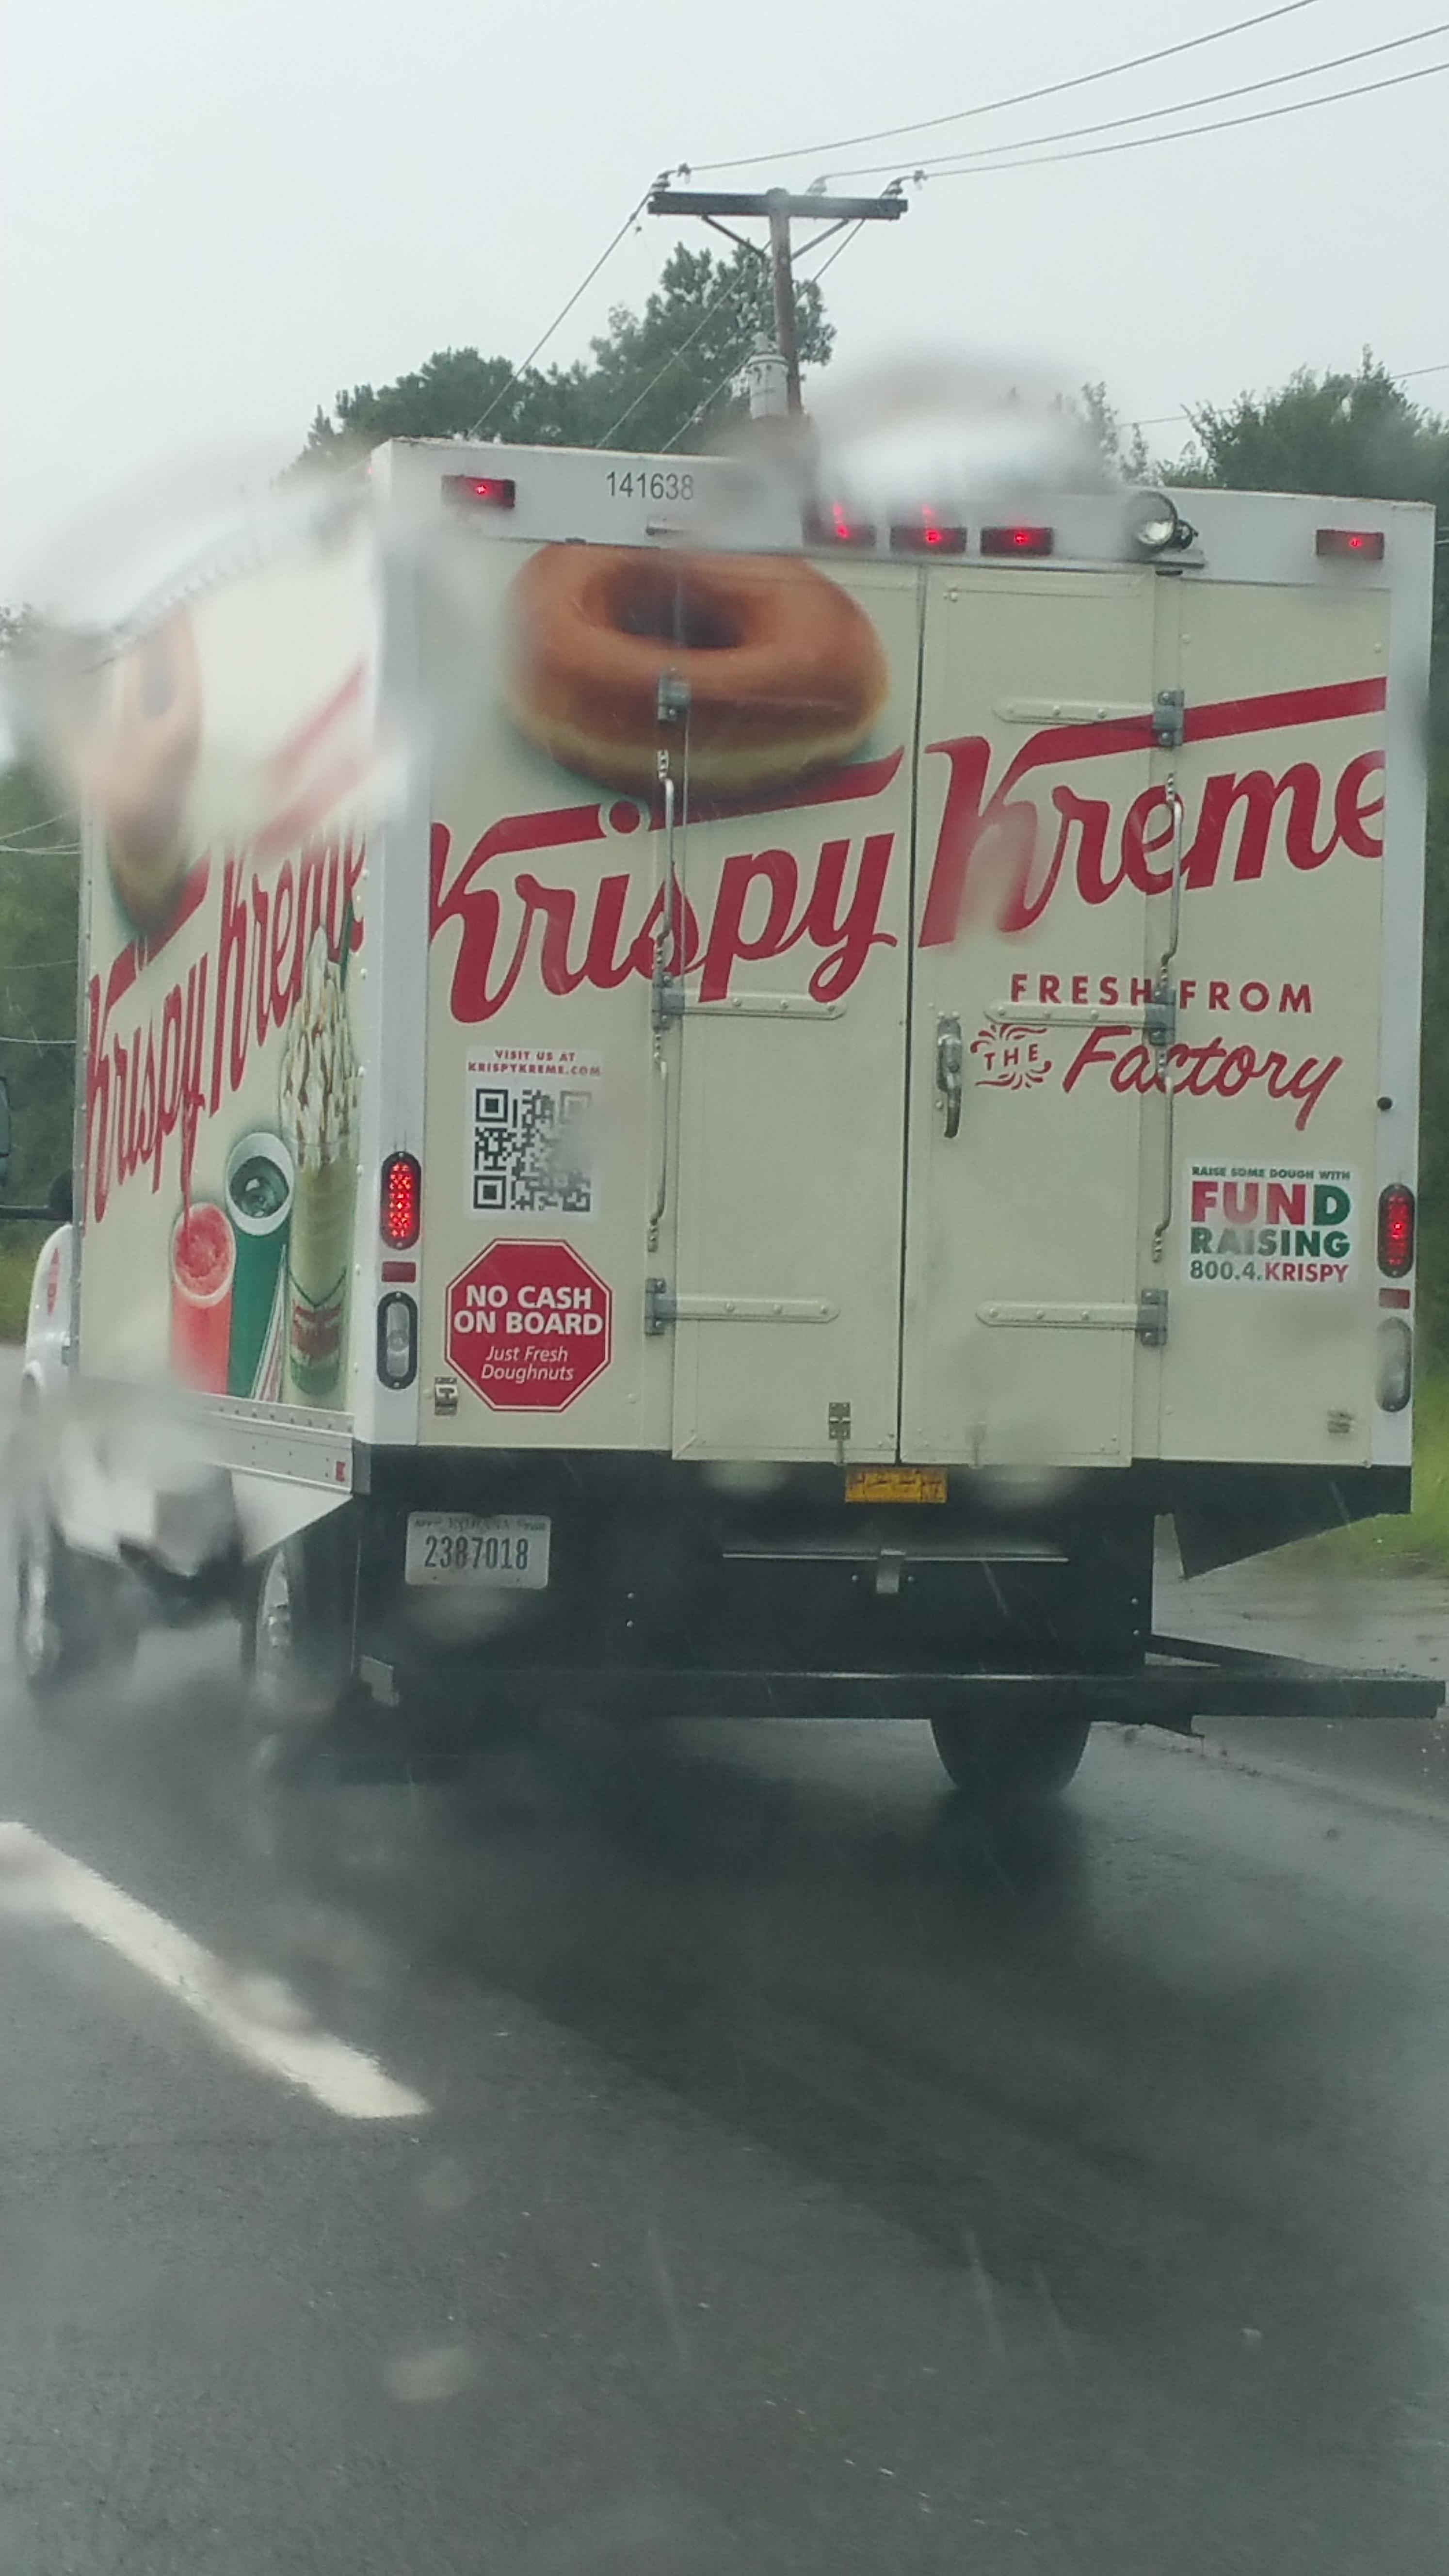 If I was going to rob from a Krispy Kreme truck, it wouldn't be for the cash